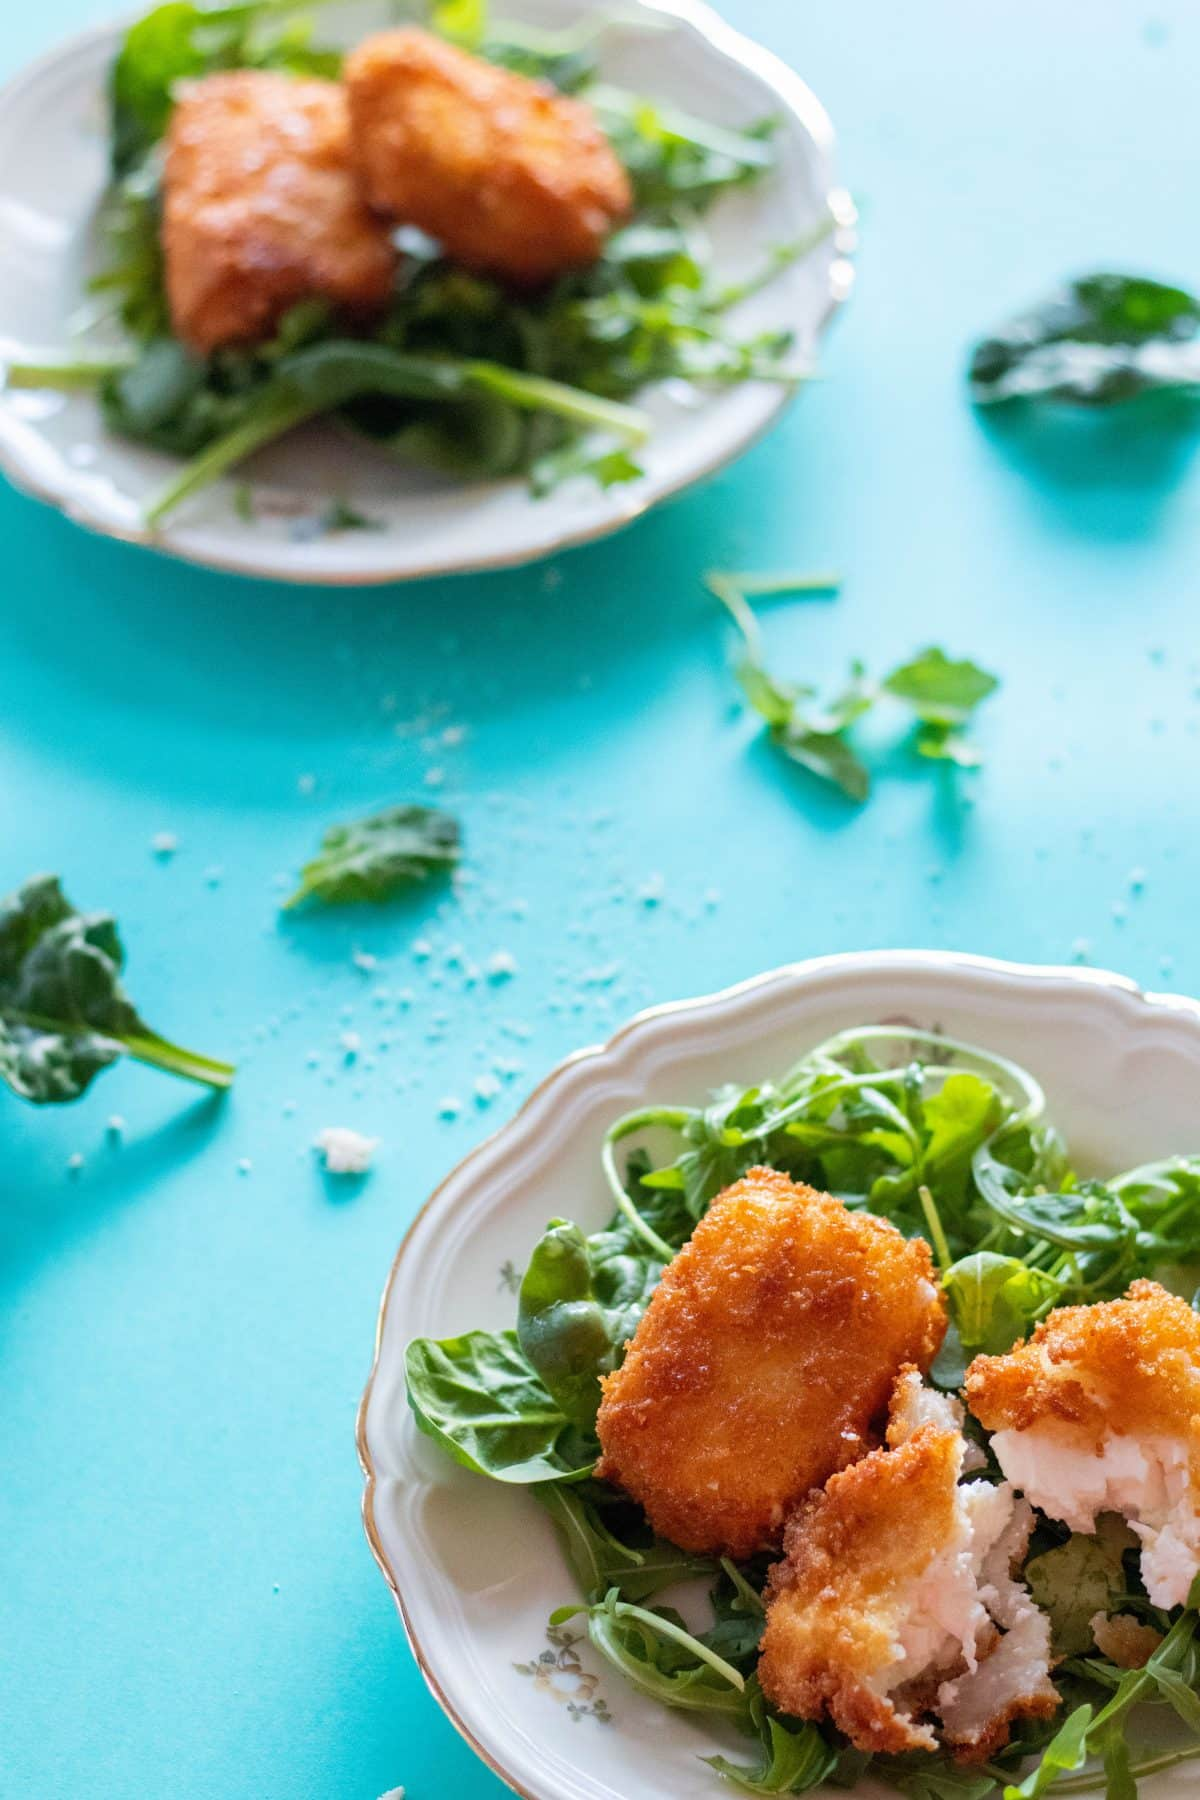 top view of panko breaded feta cheese on a bed of greens on a plate on a turquoise background